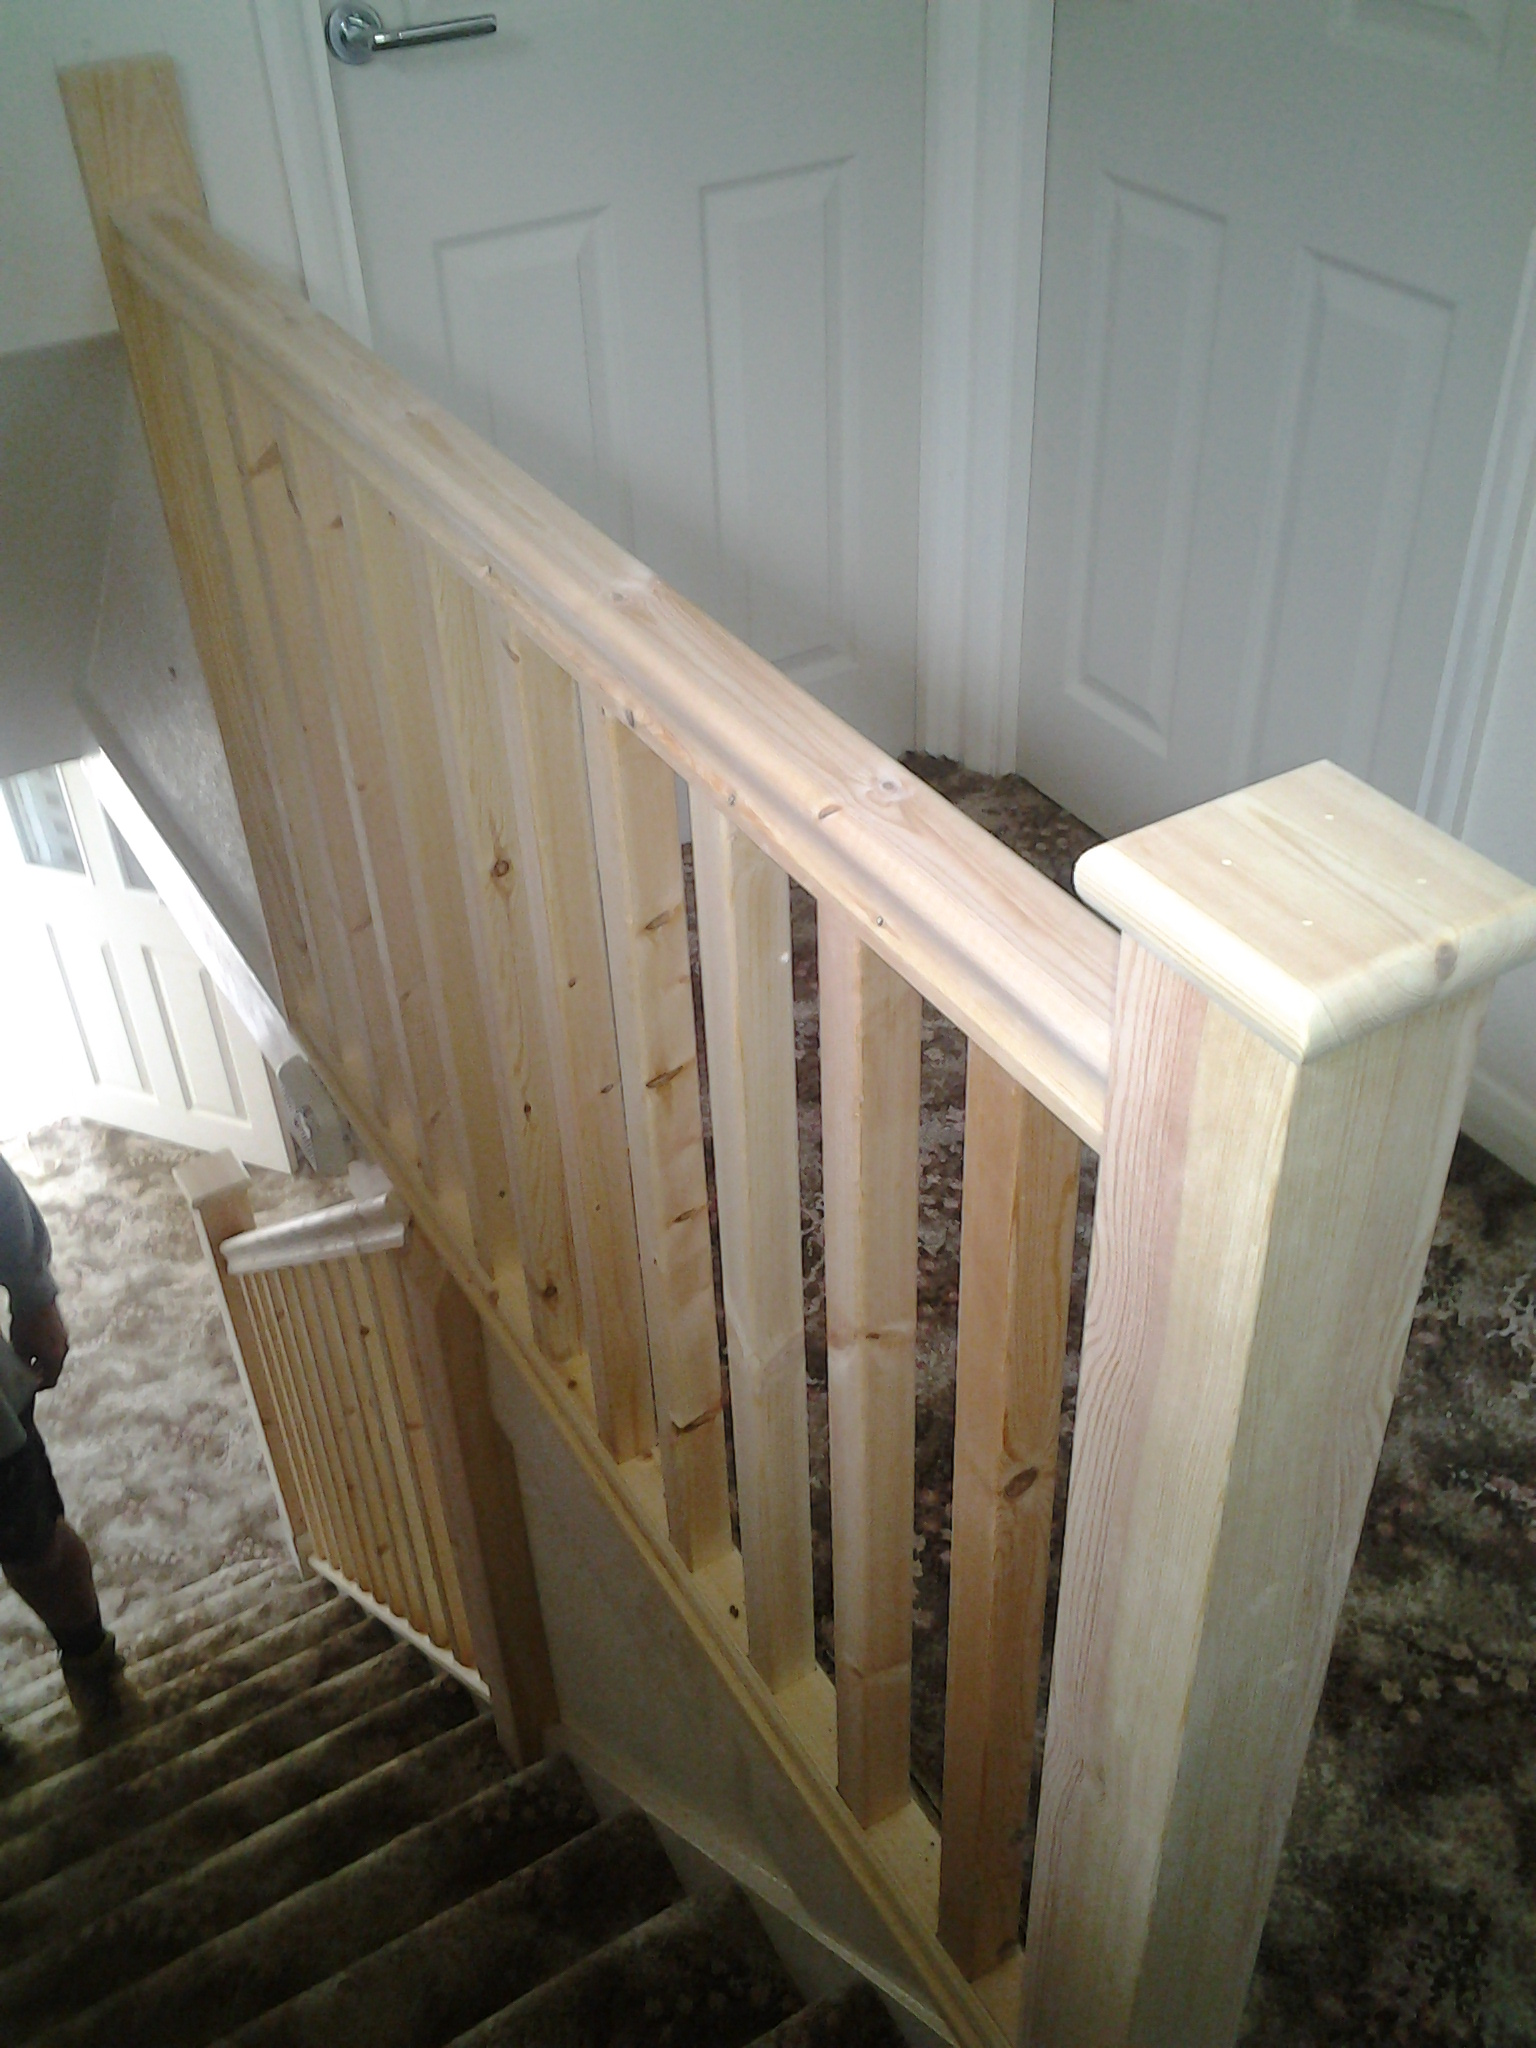 Stockport Construction – Stairs - 06